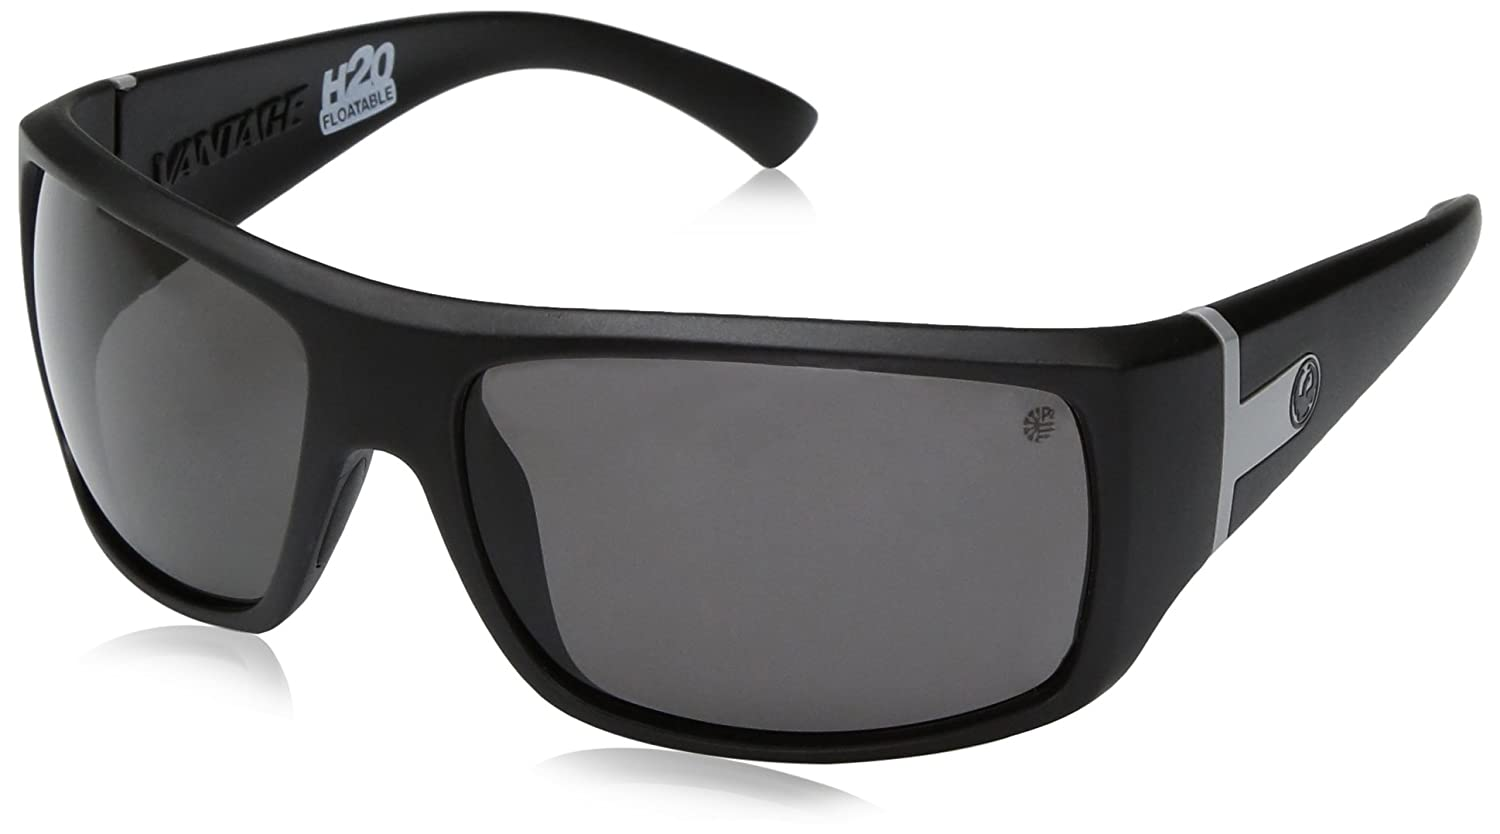 79d614d6bb Dragon Alliance Vantage Matte P2 Sunglasses